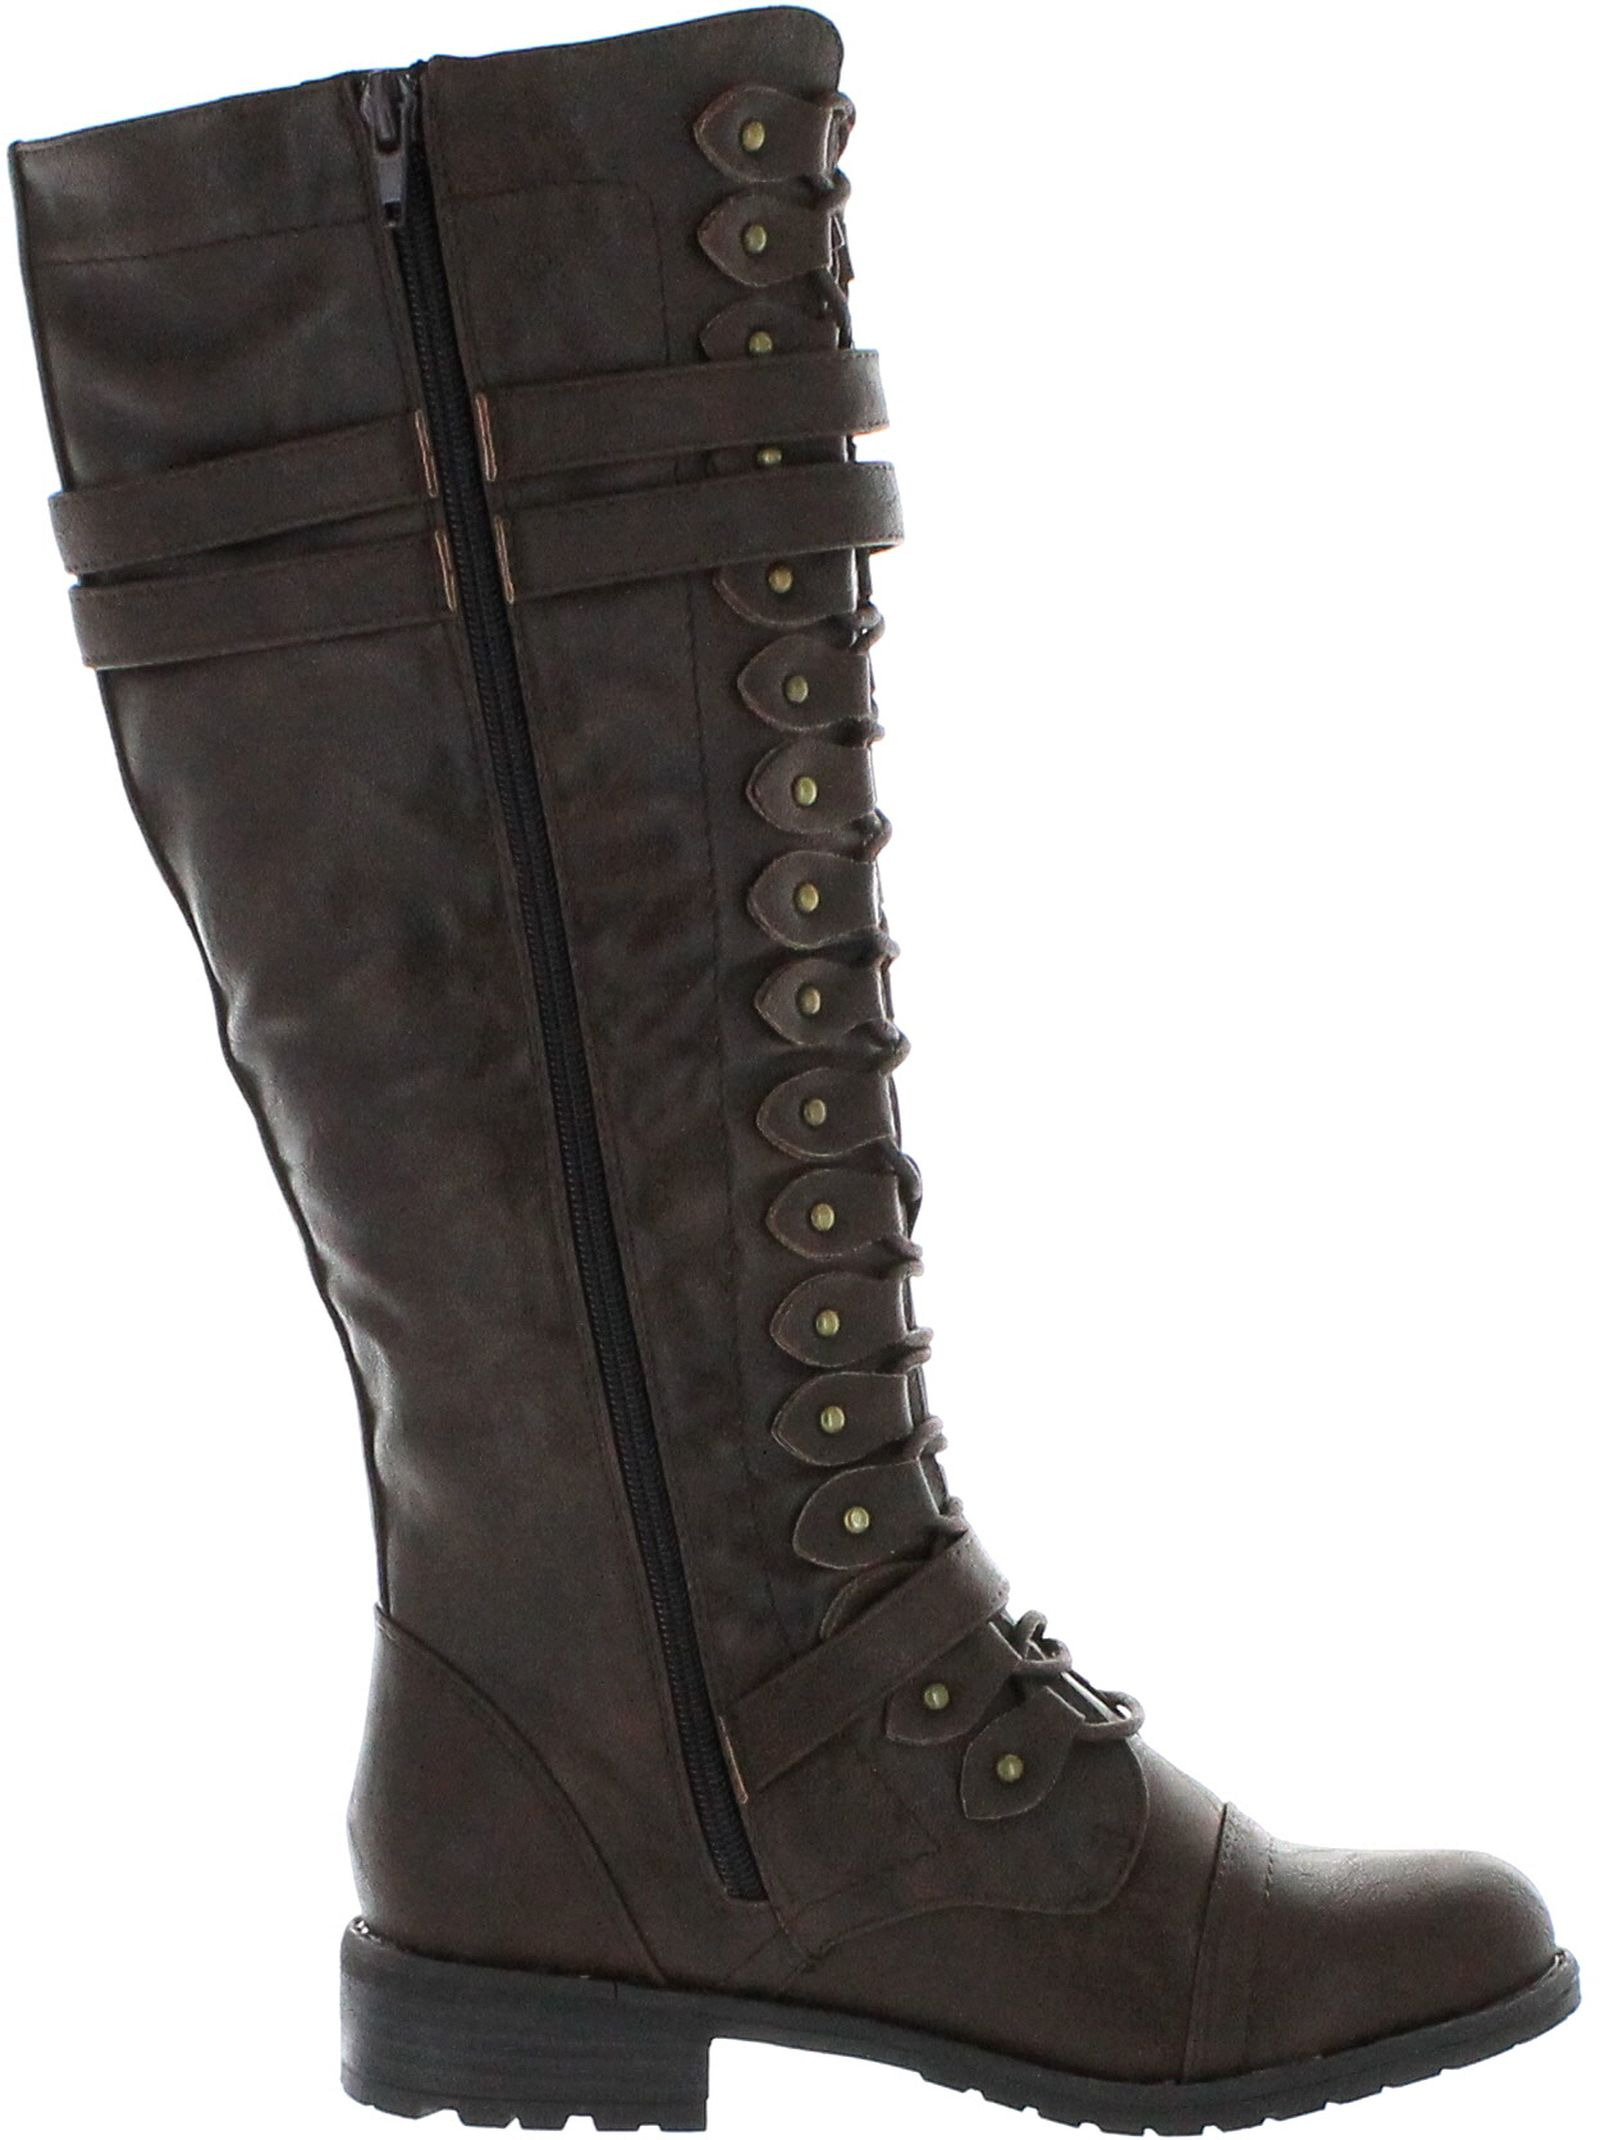 Lastest Caterpillar MADELYN Women Casual Fashion Work Amp Safety Boot  EBay